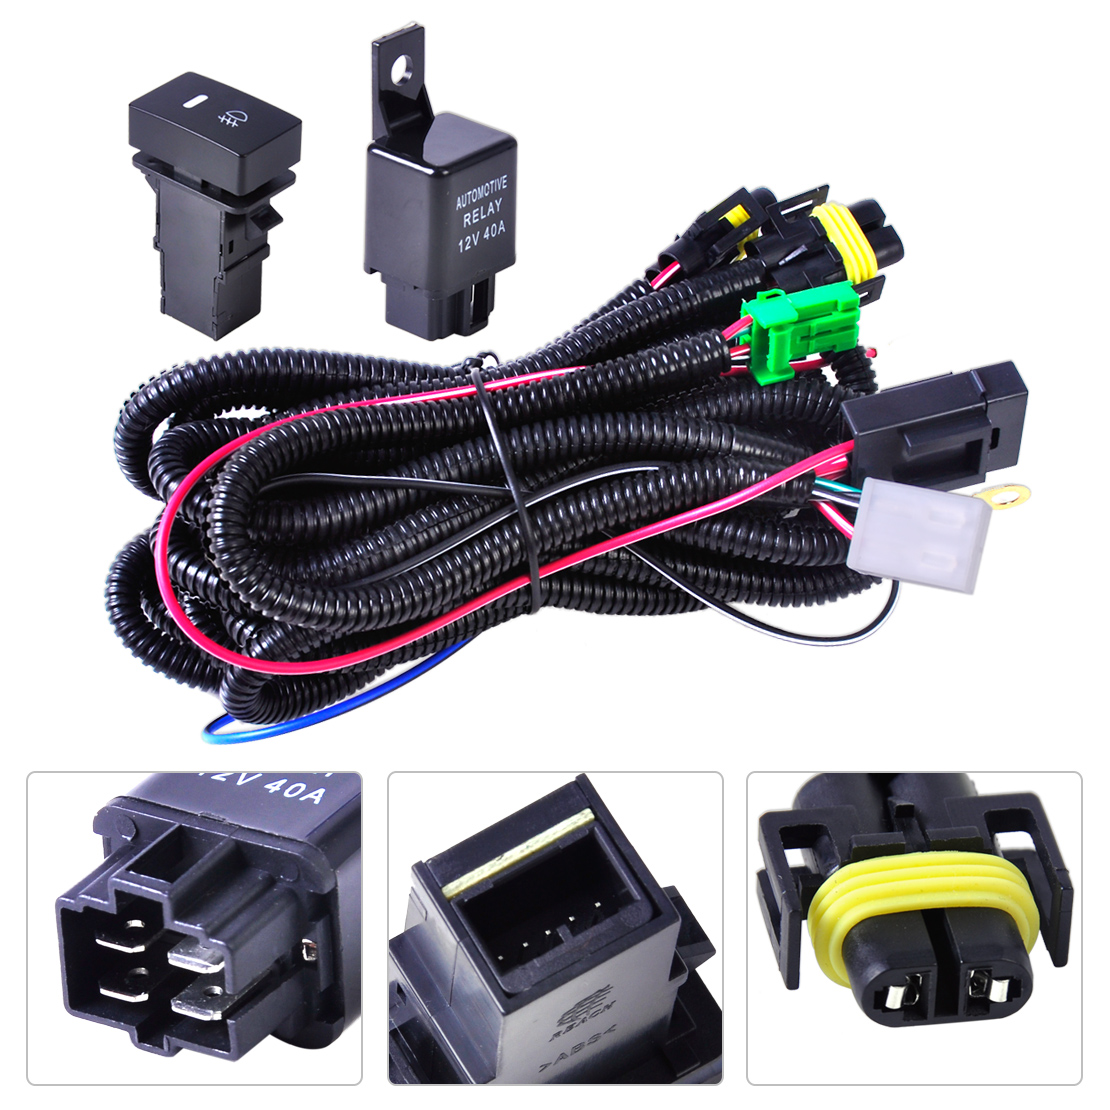 Citall H11 Fog Light Lamp Wiring Harness Sockets Wire Switch With Nissan Altima Headlight Beler Led Indicators At Relay